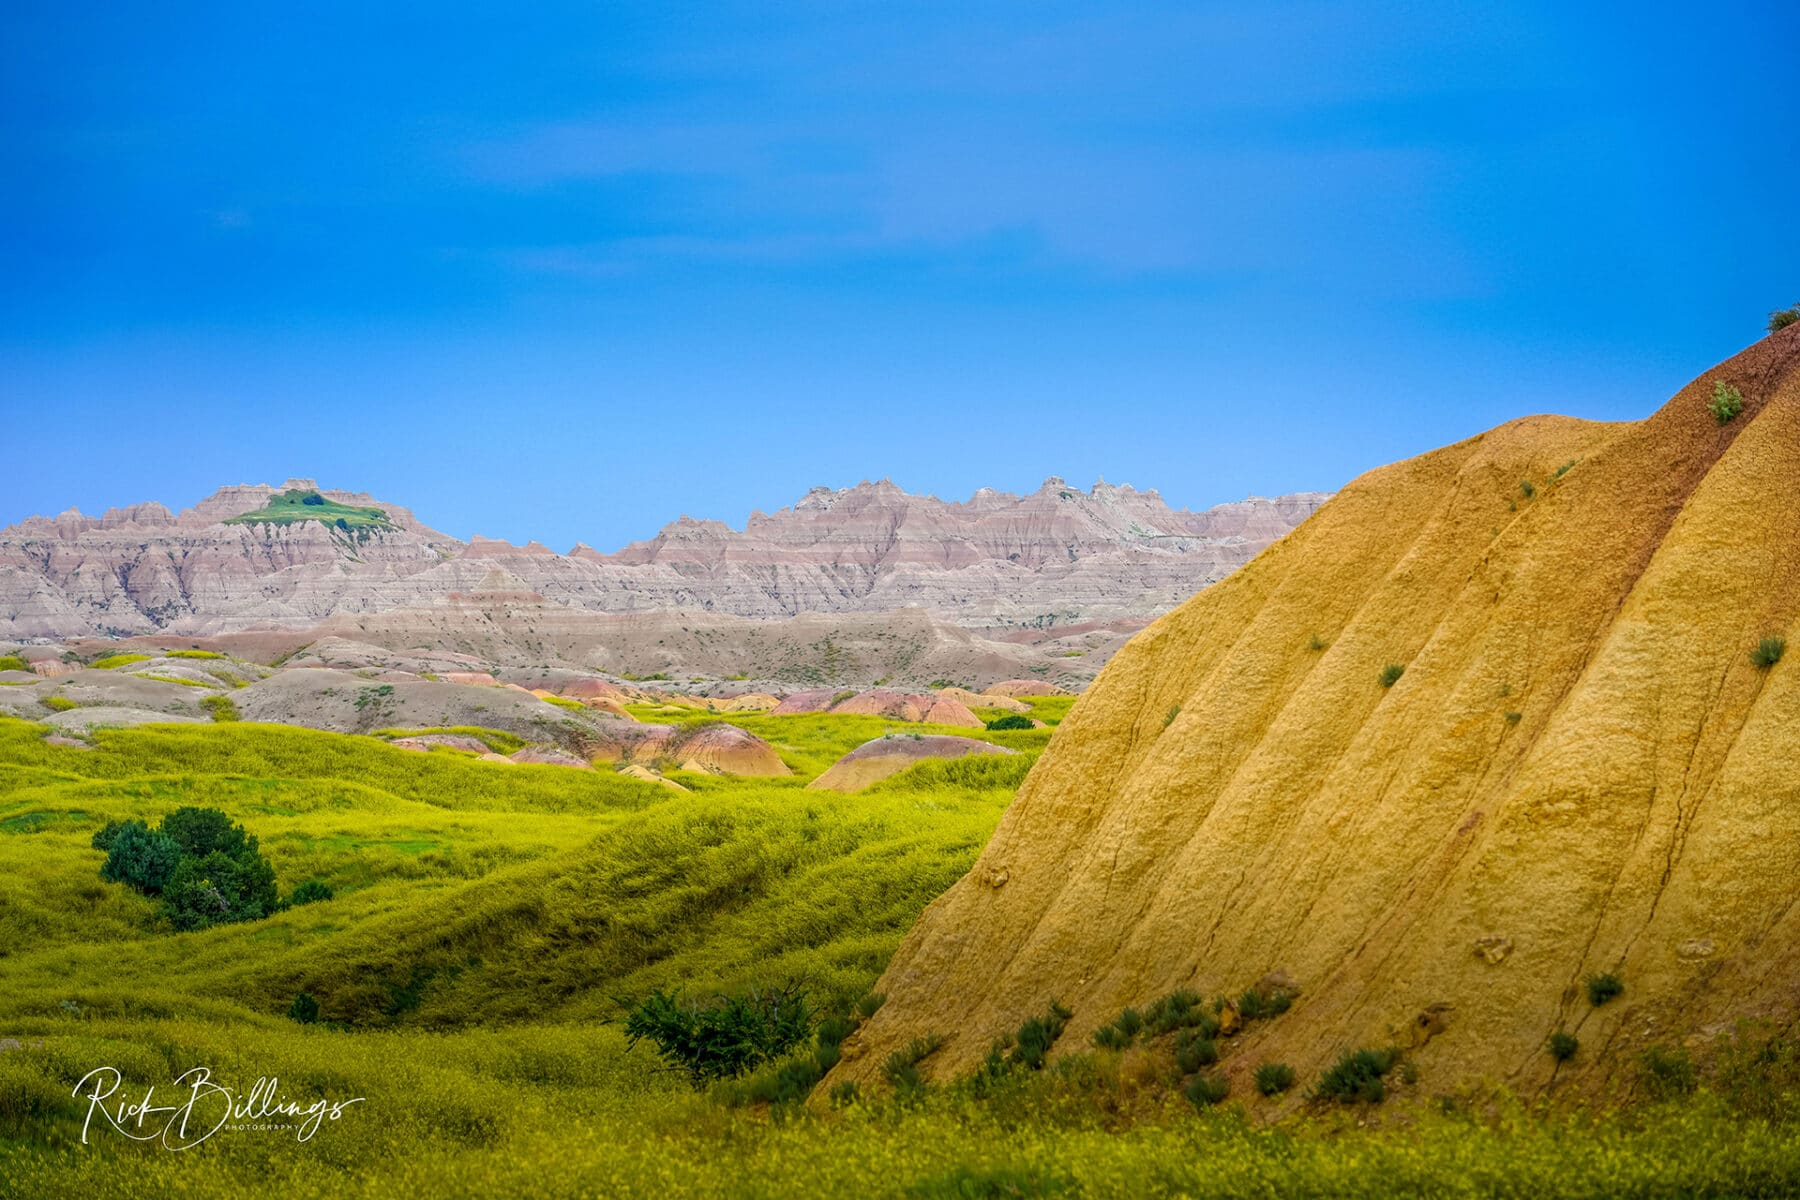 No 1009 20190811 Badlands Yellow Mounds